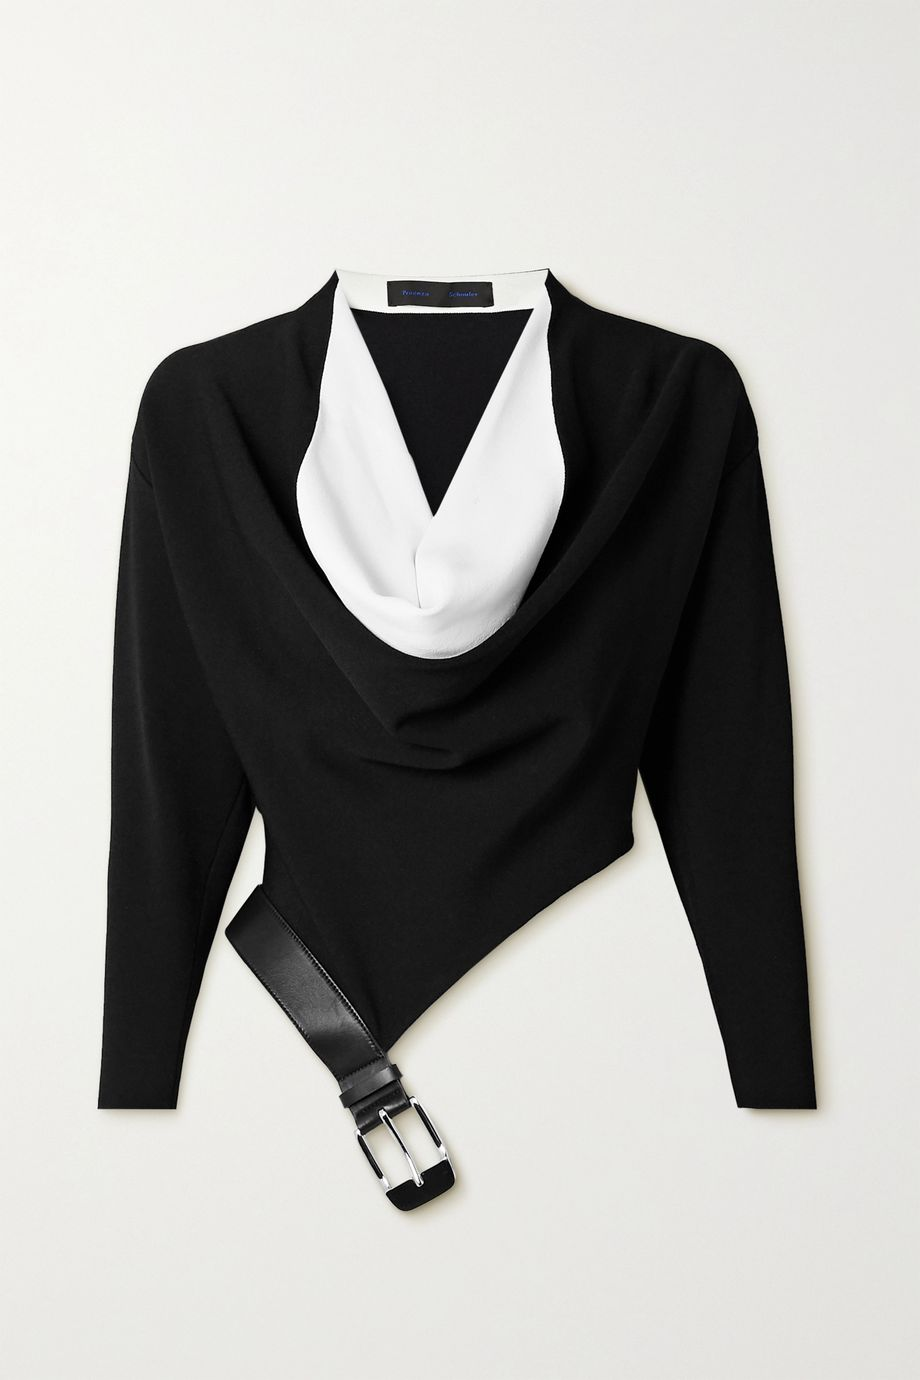 Proenza Schouler Draped two-tone leather-trimmed stretch-knit blouse